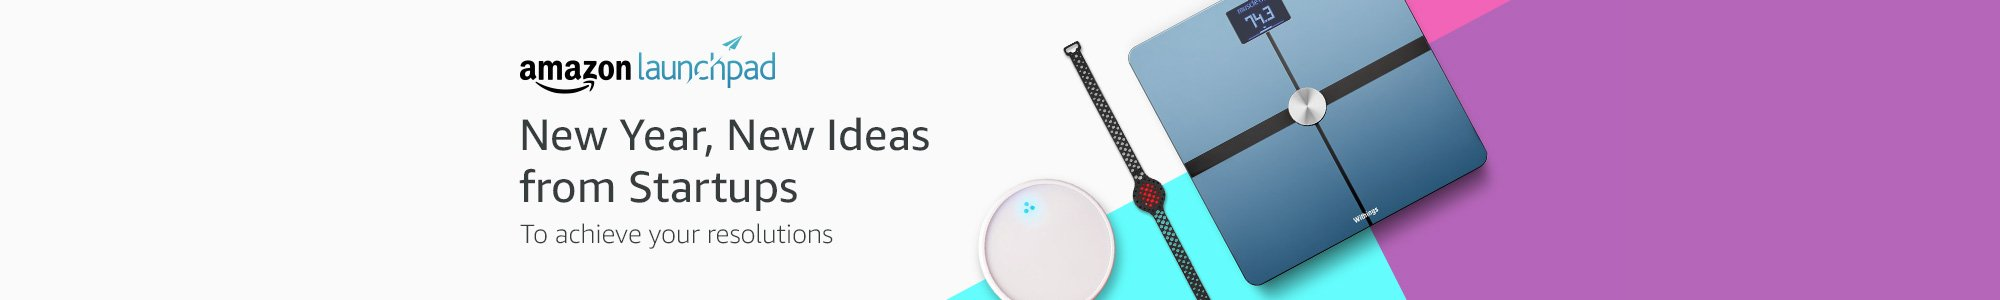 New Year New Ideas from Startups